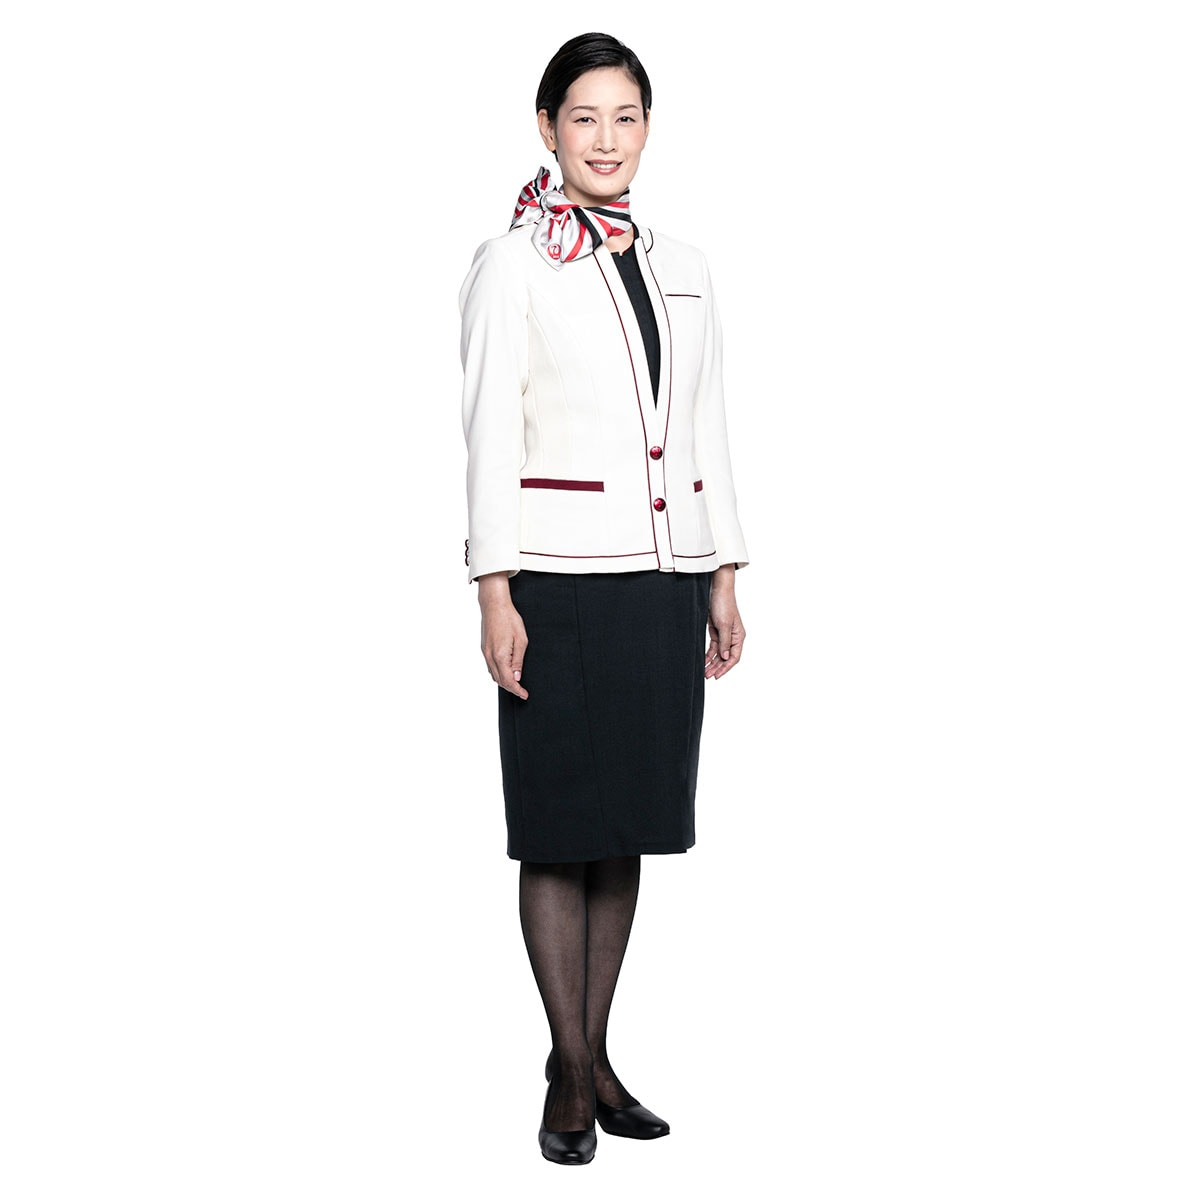 JAL 新制服